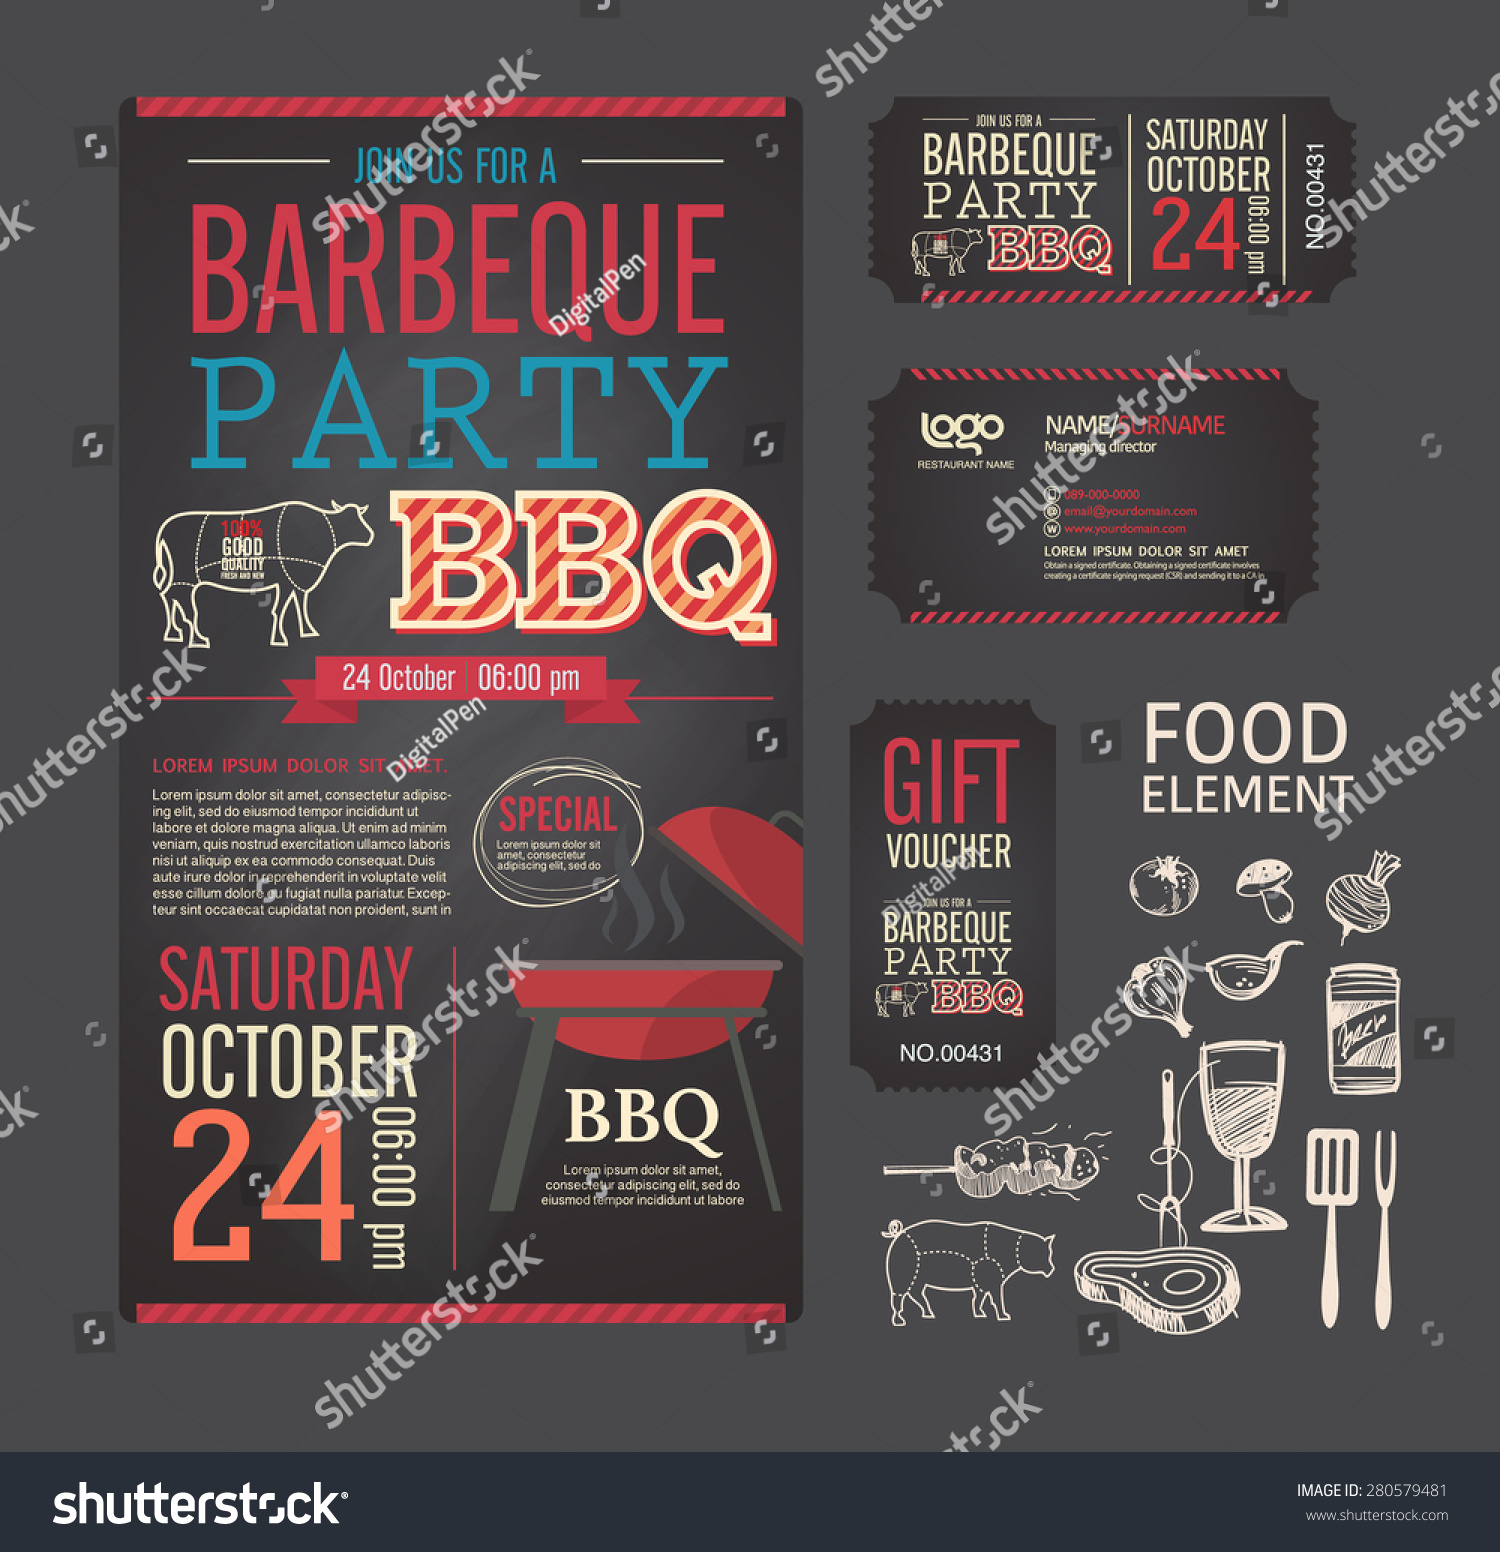 Barbecue tickets design bing images for Bbq ticket template free